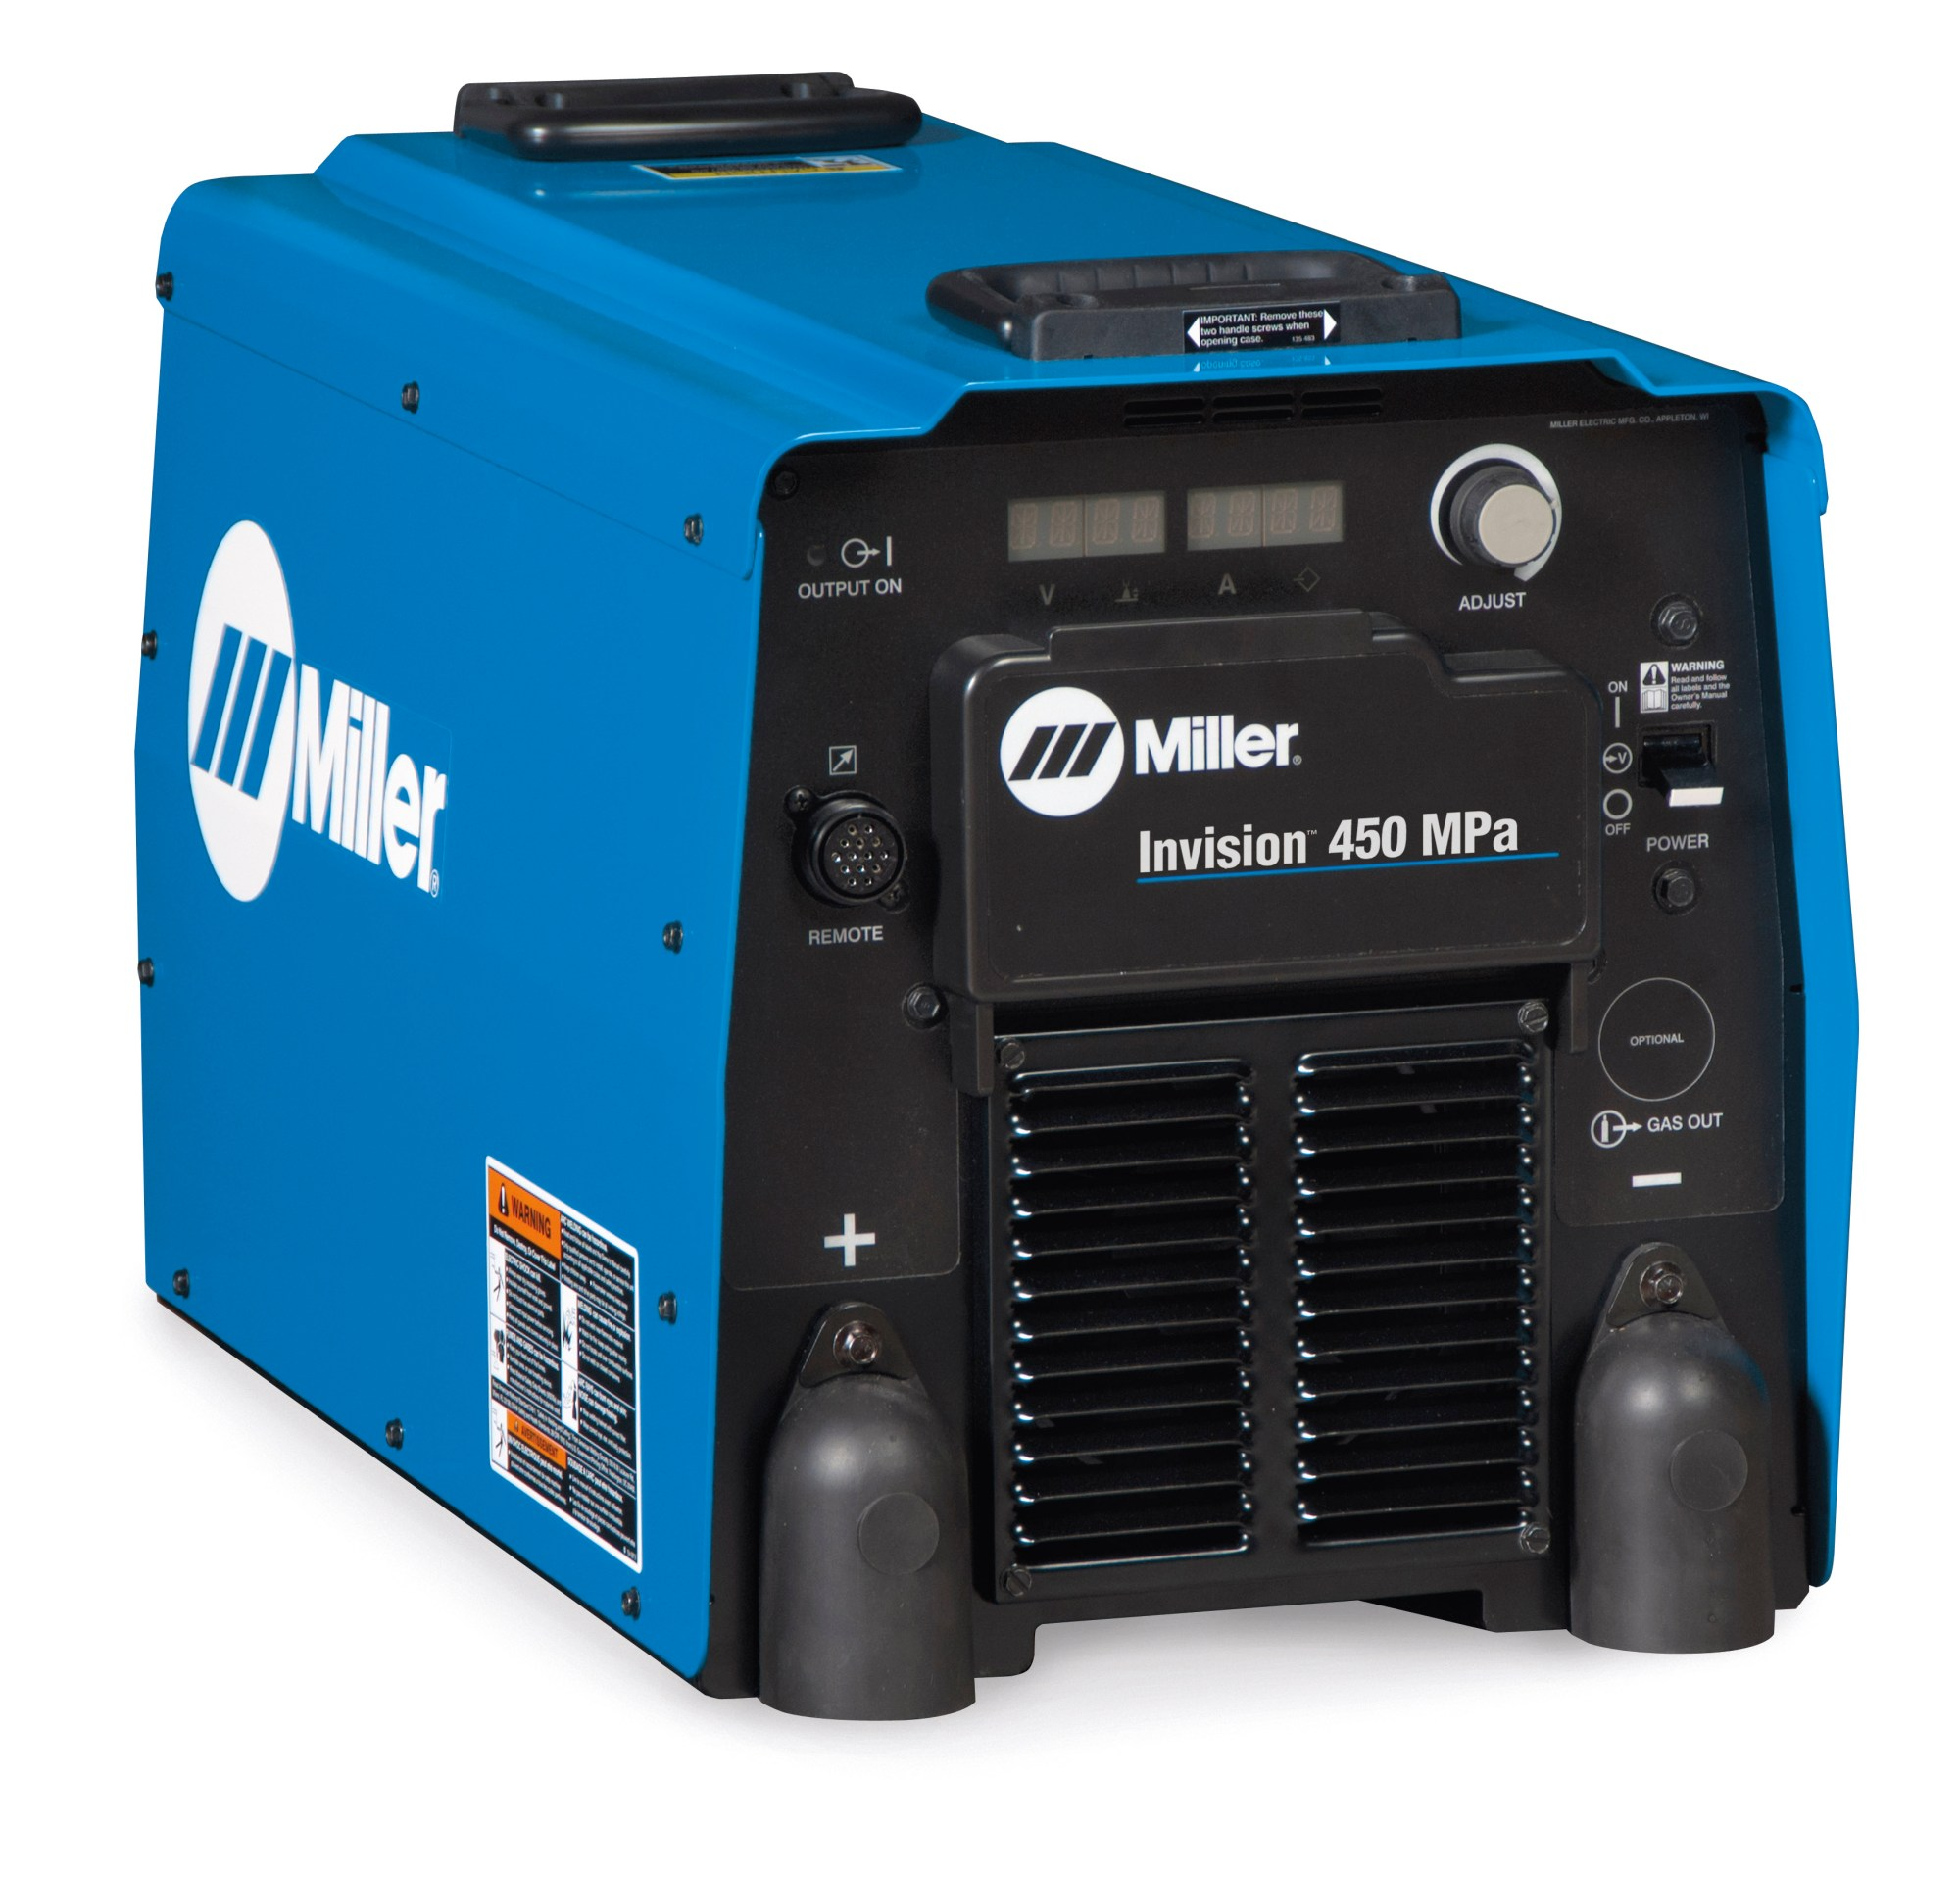 hight resolution of invision 450 mpa mig welder